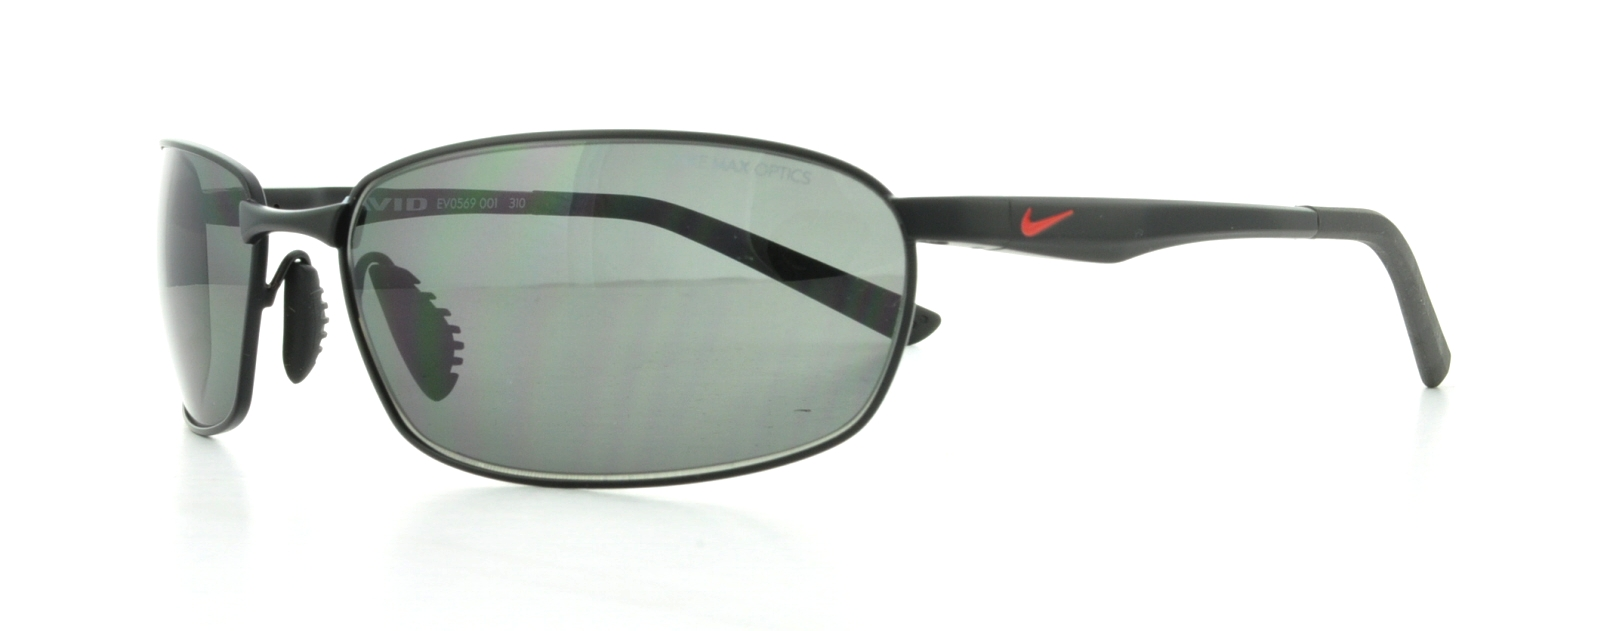 finest selection 09fc1 4f599 Picture of Nike Sunglasses AVID WIRE EV0569